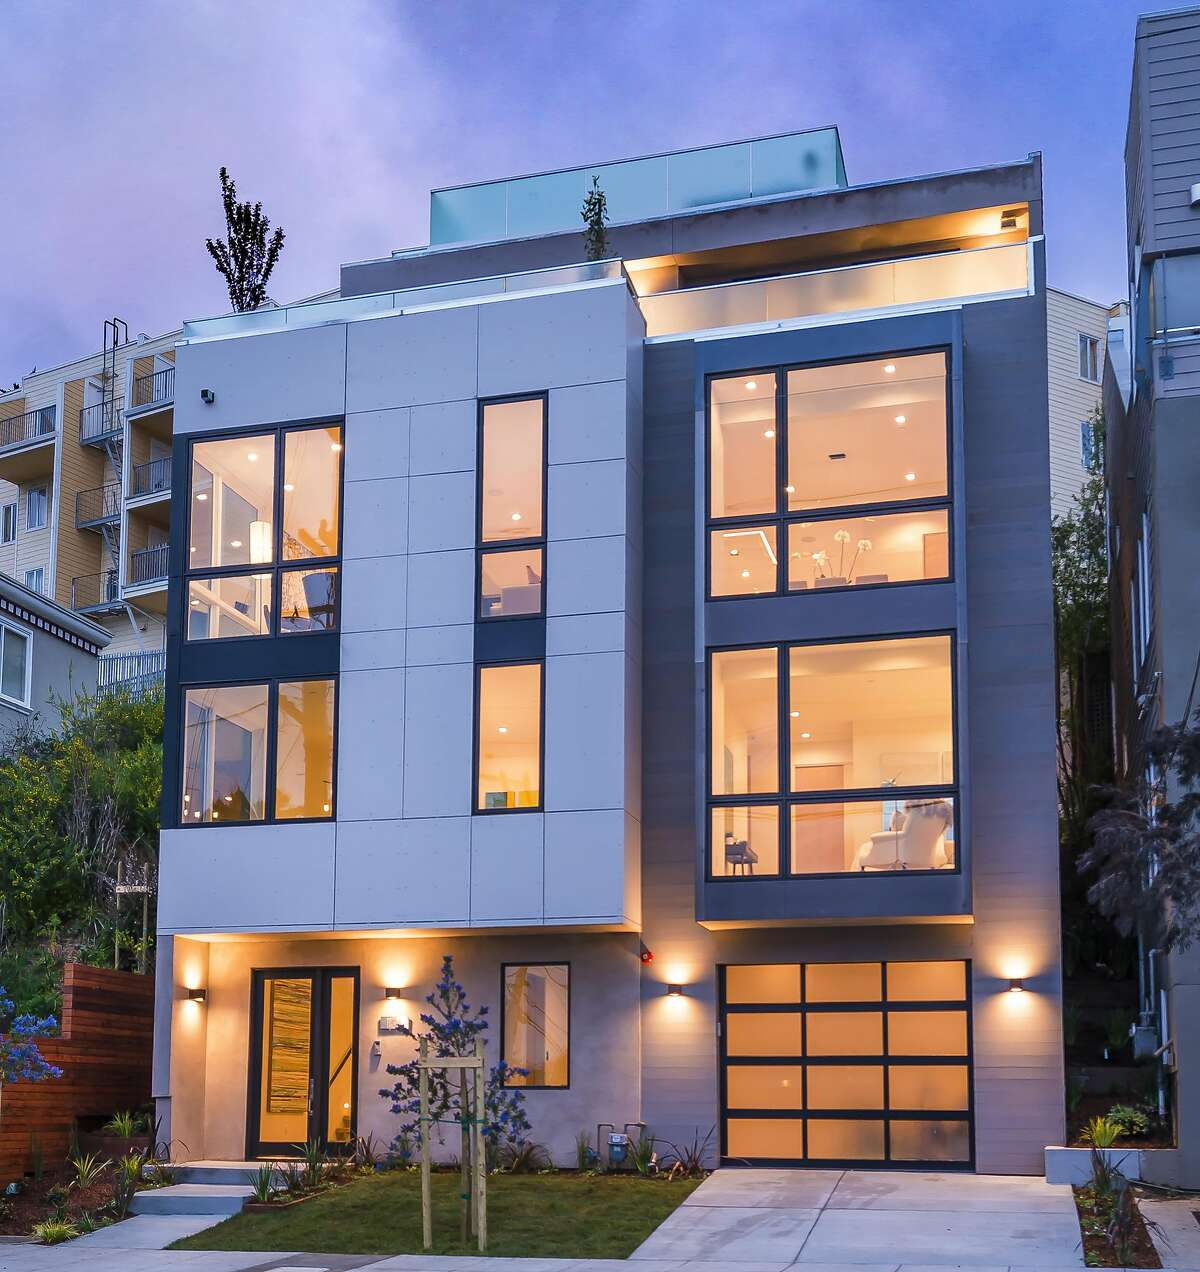 1644 Diamond St. in Noe Valley is a four-level four-bedroom available for $3.895 million.�